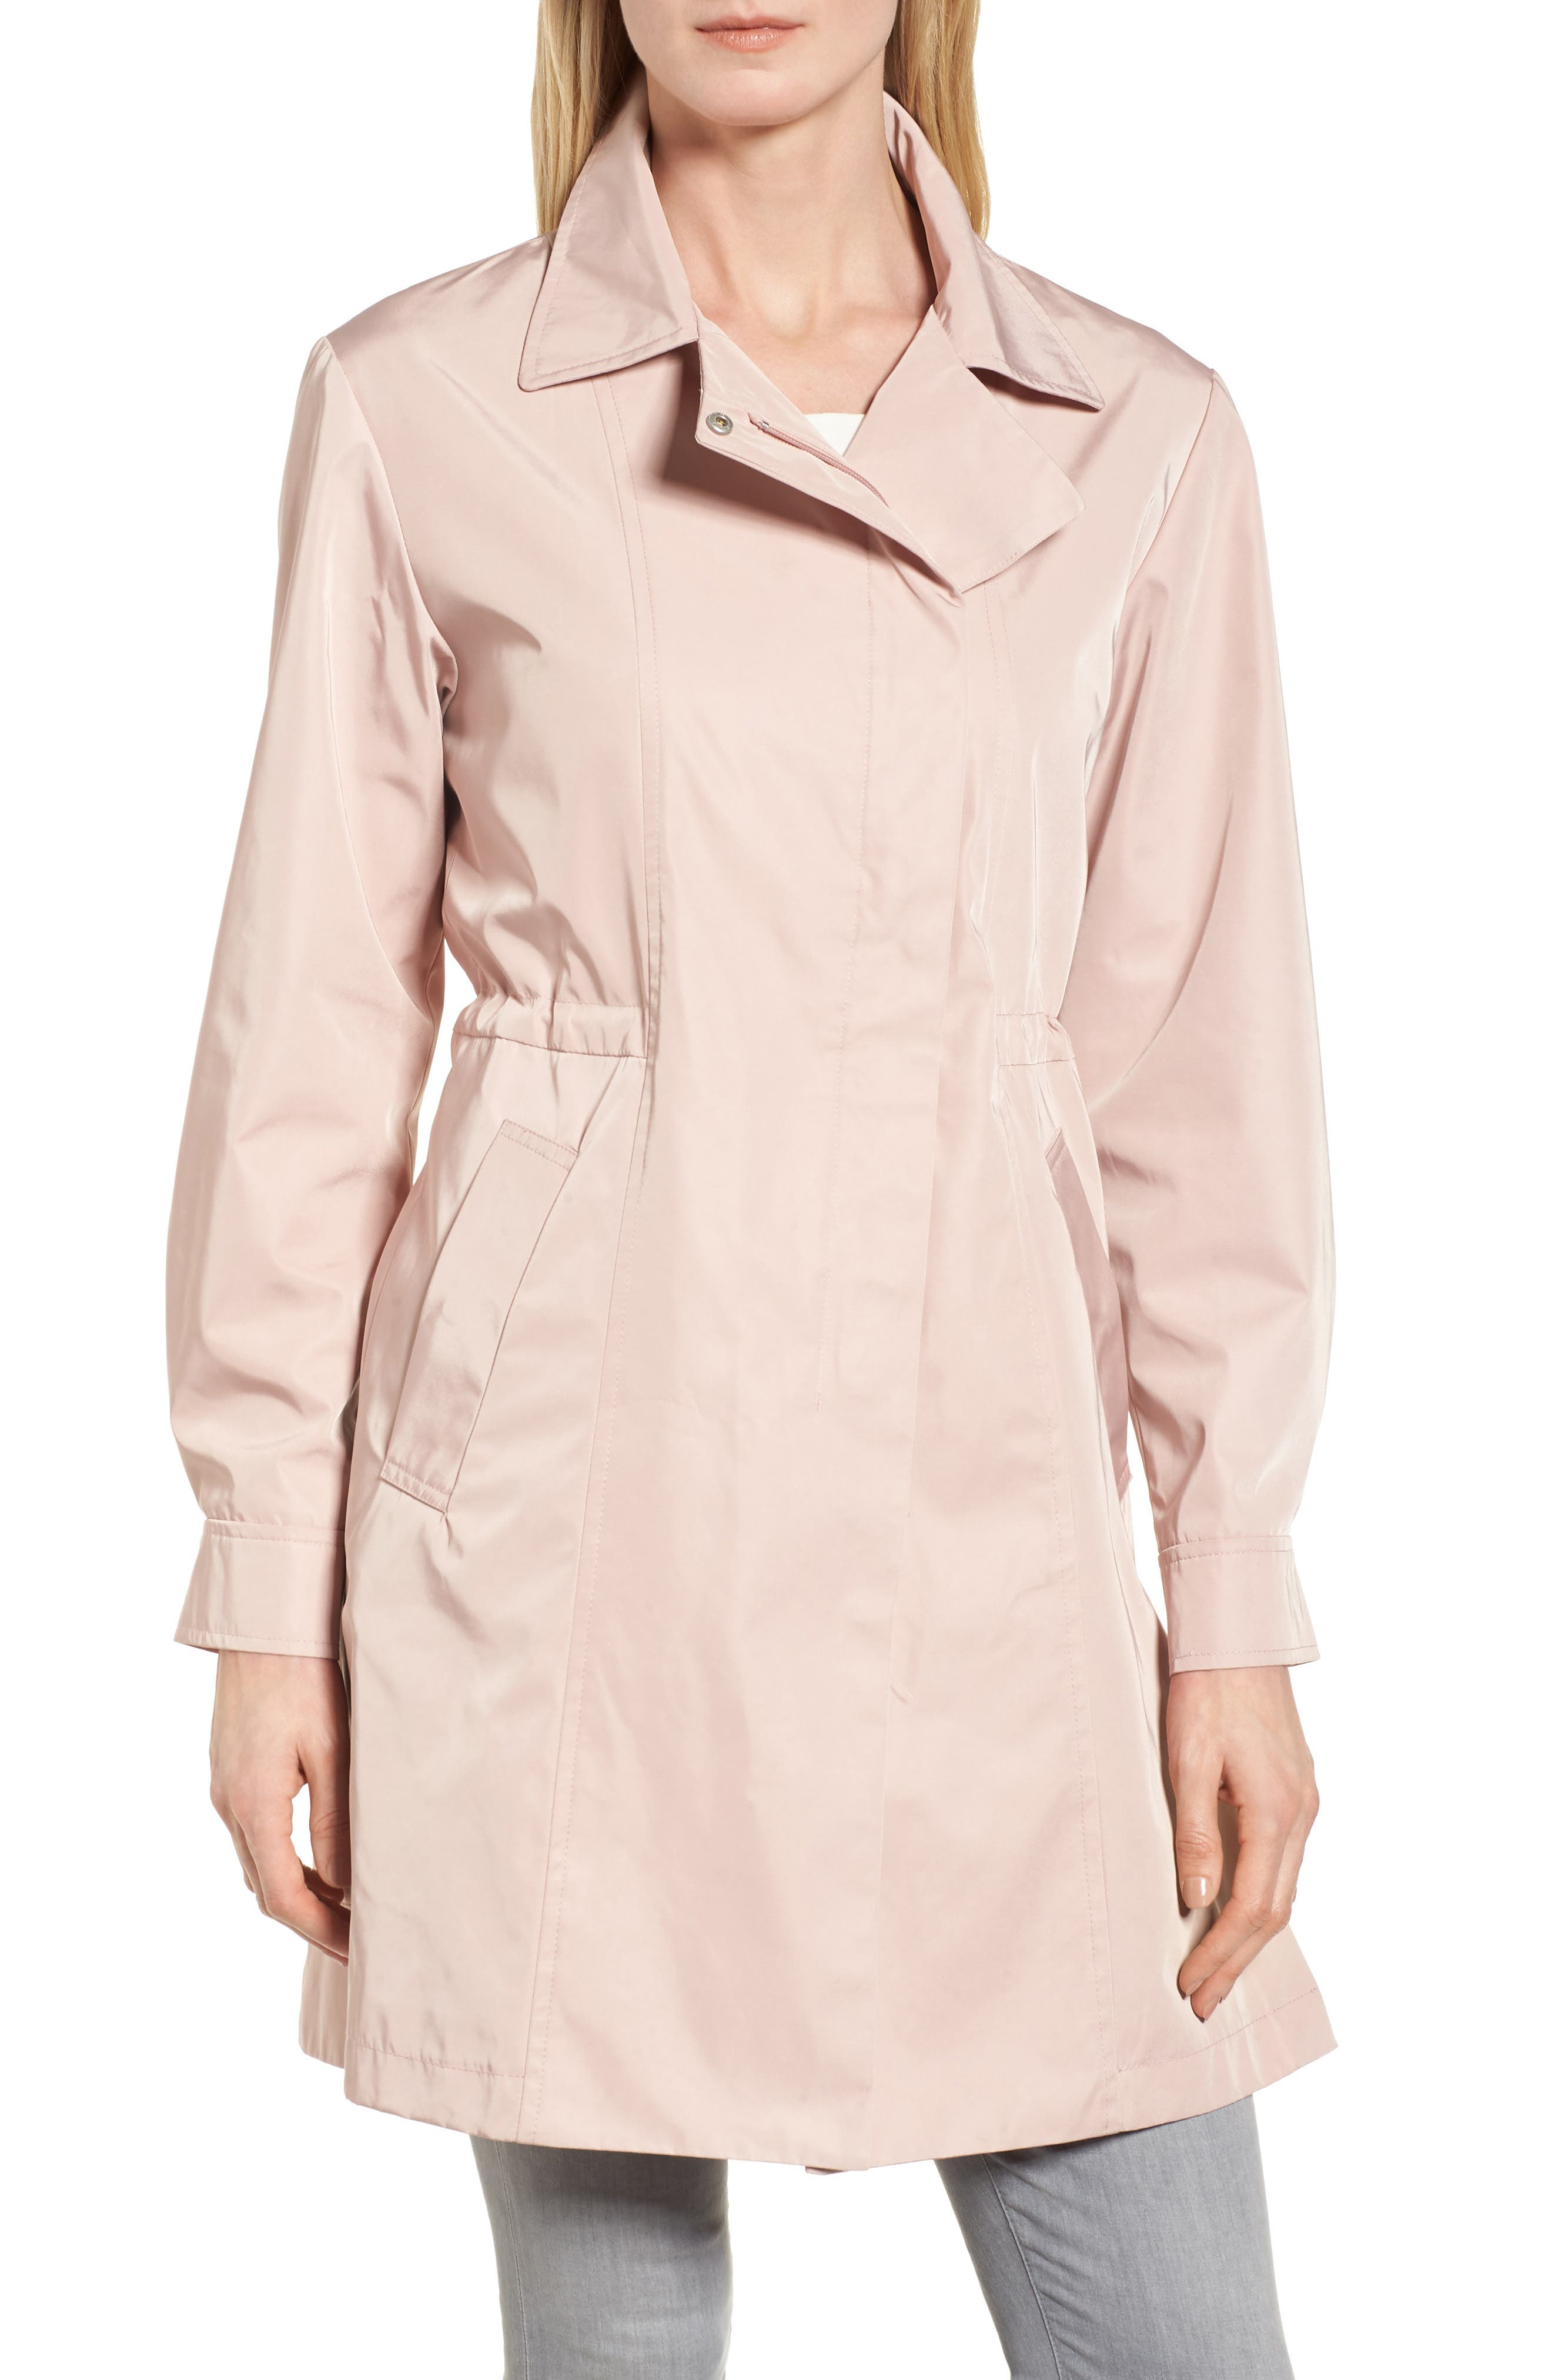 Tech Hooded Trench Coat,                             Alternate thumbnail 4, color,                             Misty Rose